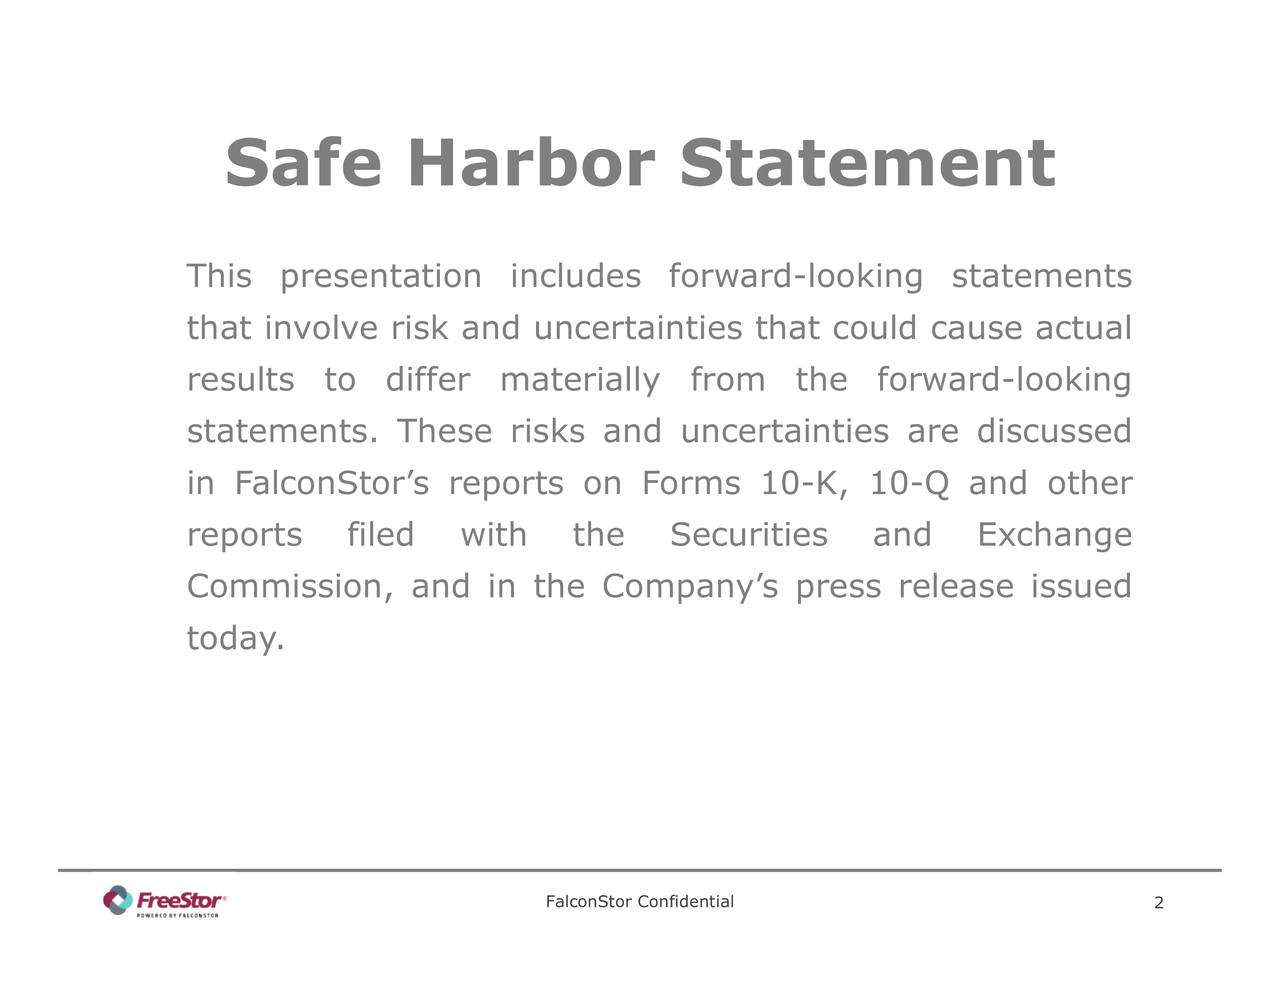 FalconStor Confidential Safe Harbor Statement Thithatenslaietrepti.sooeseiri,orydsfnhhteeCsliaoetys